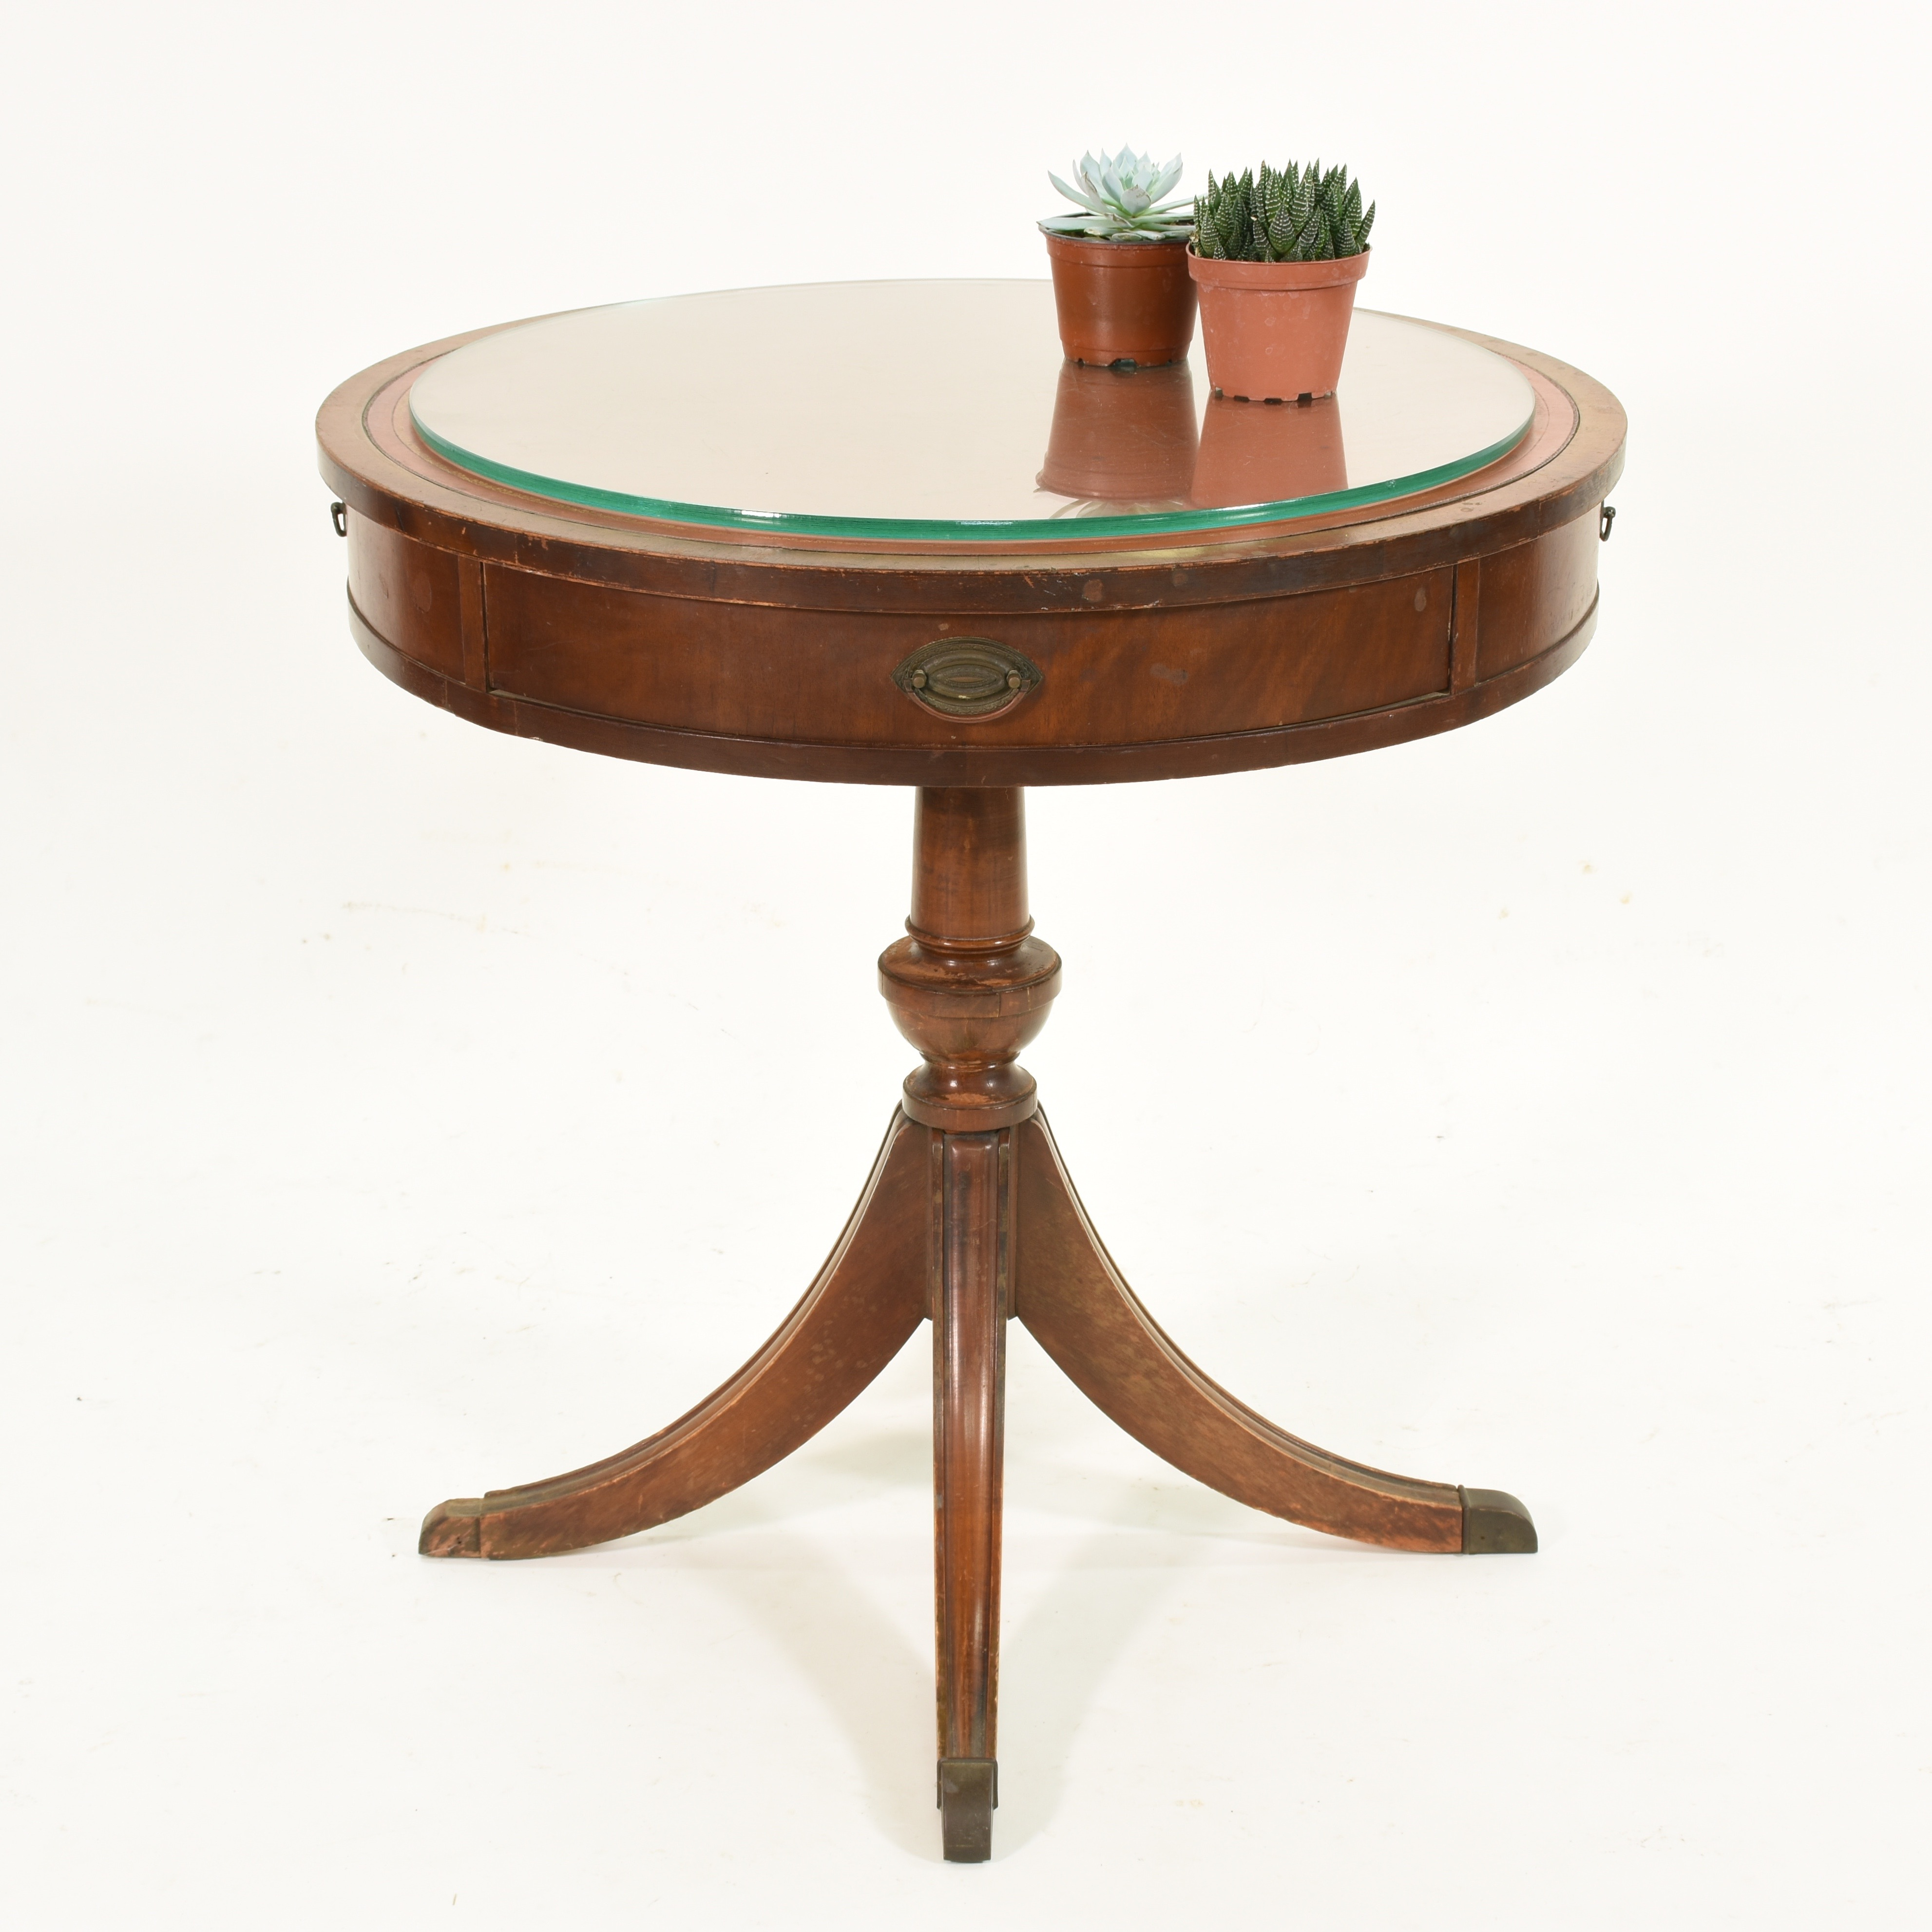 Antique Round Leather Top Table Sesigncorp